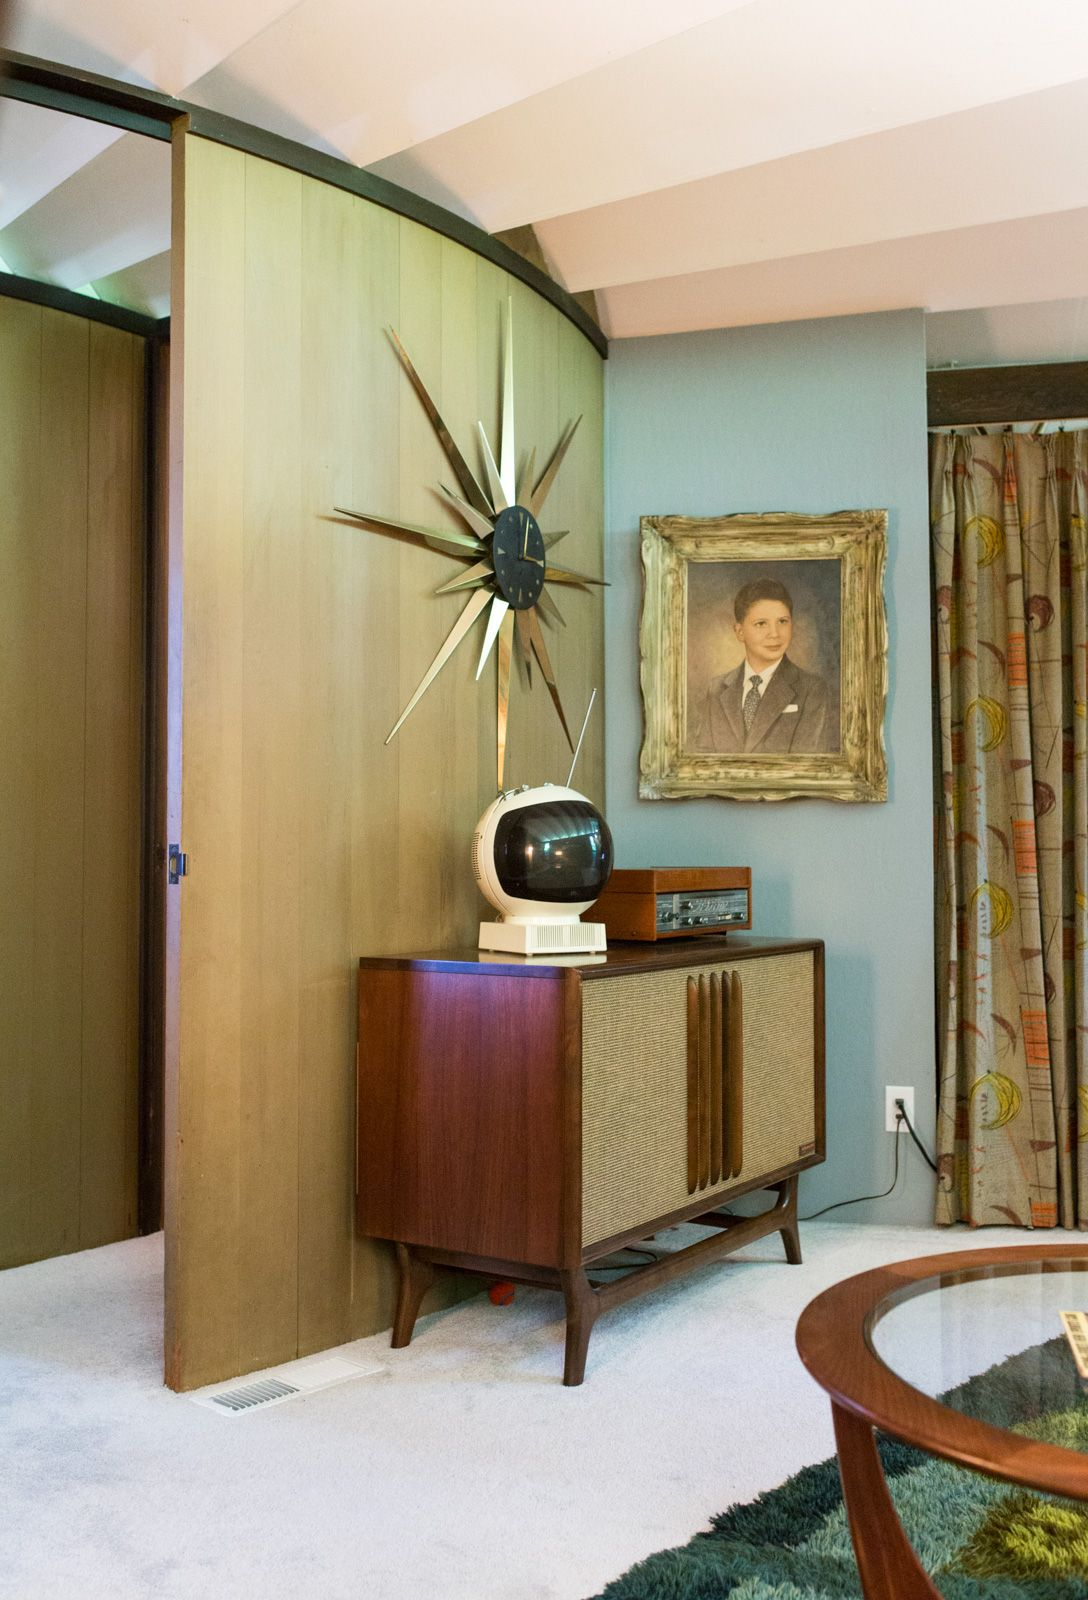 House Tour: A Round Mid-Century Time Capsule in Oakland, California ...